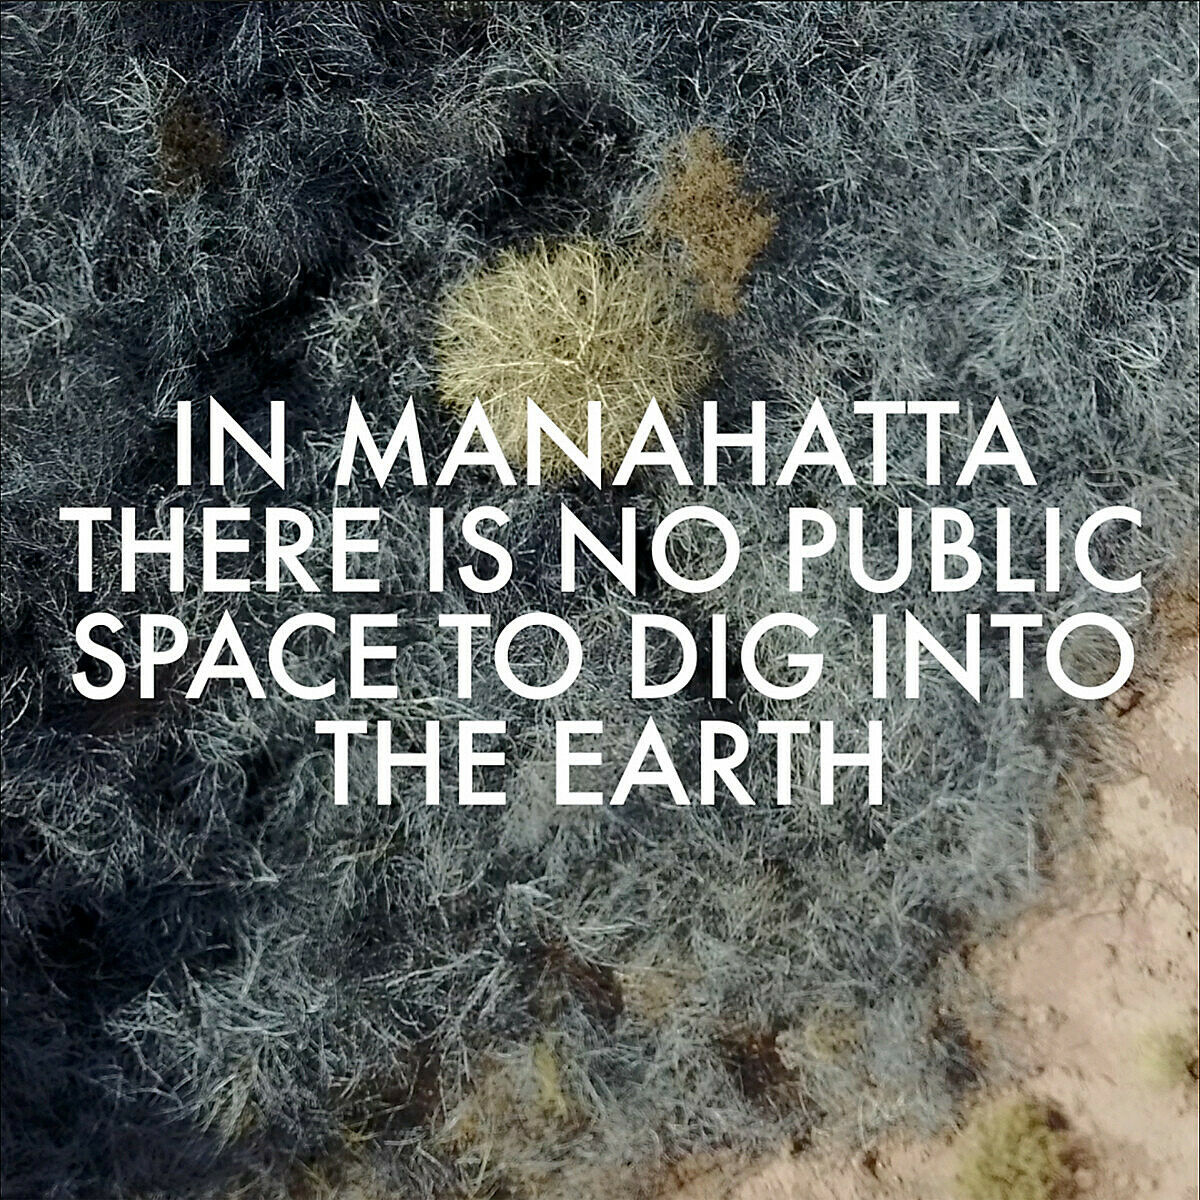 Image of ground with white text overlay.